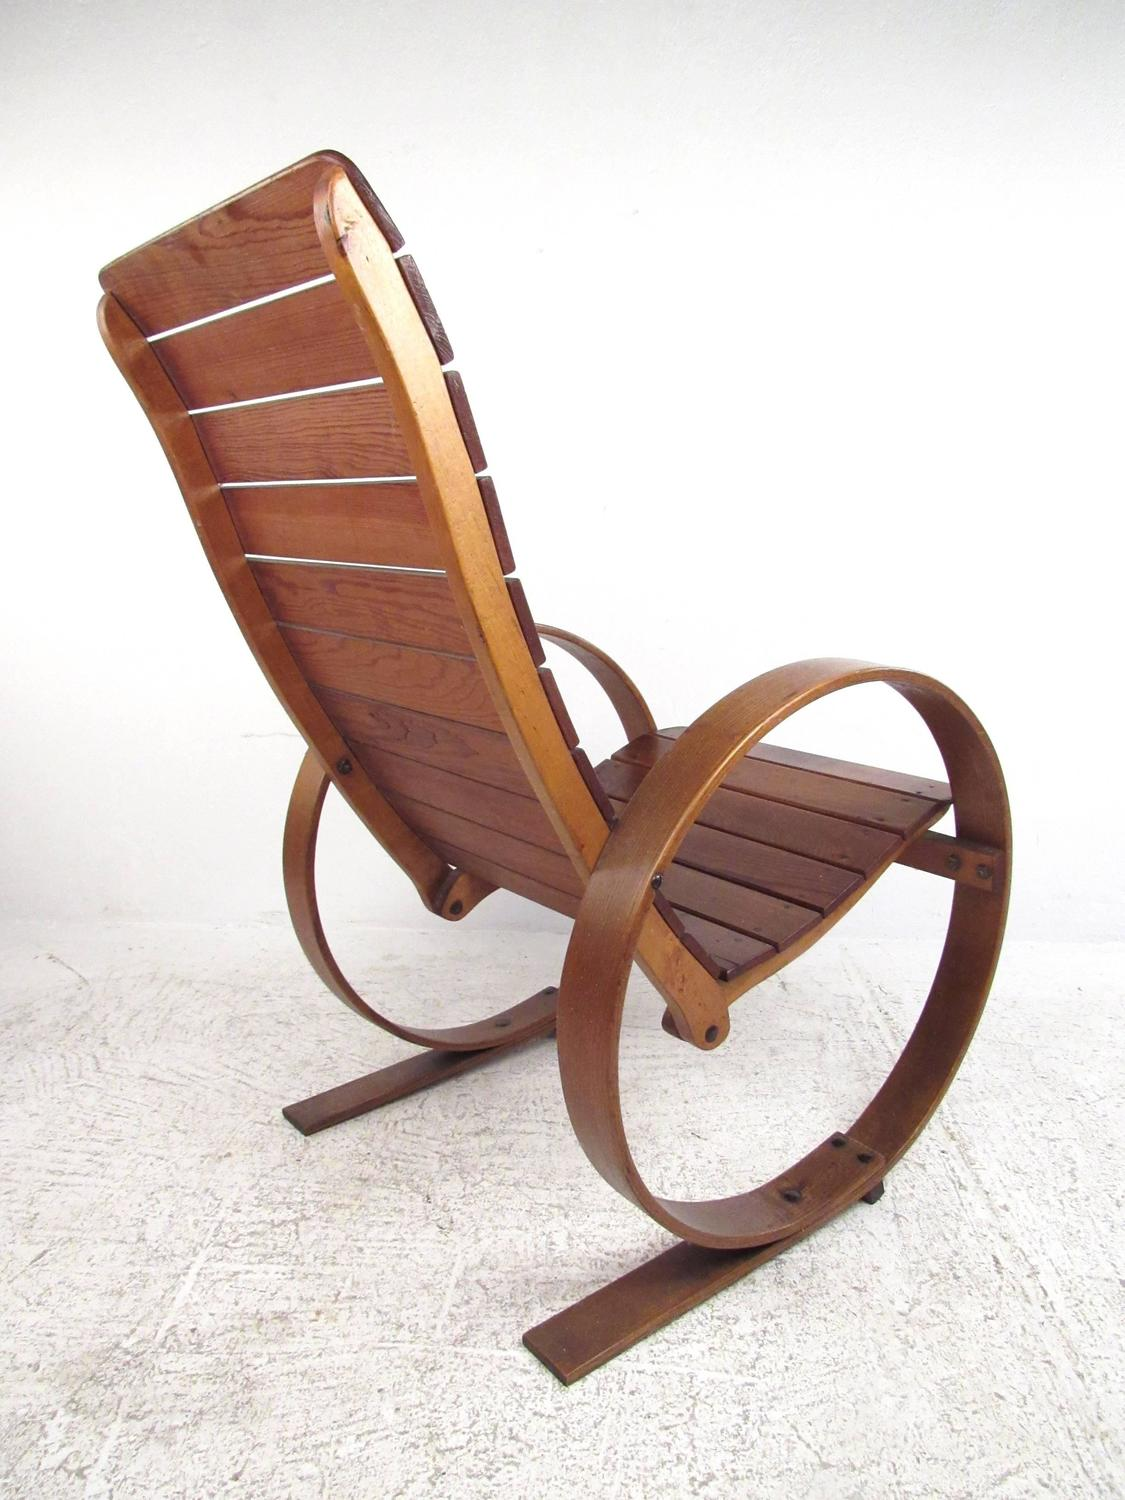 Vintage Studio Made Rocking Chair For Sale at 1stdibs